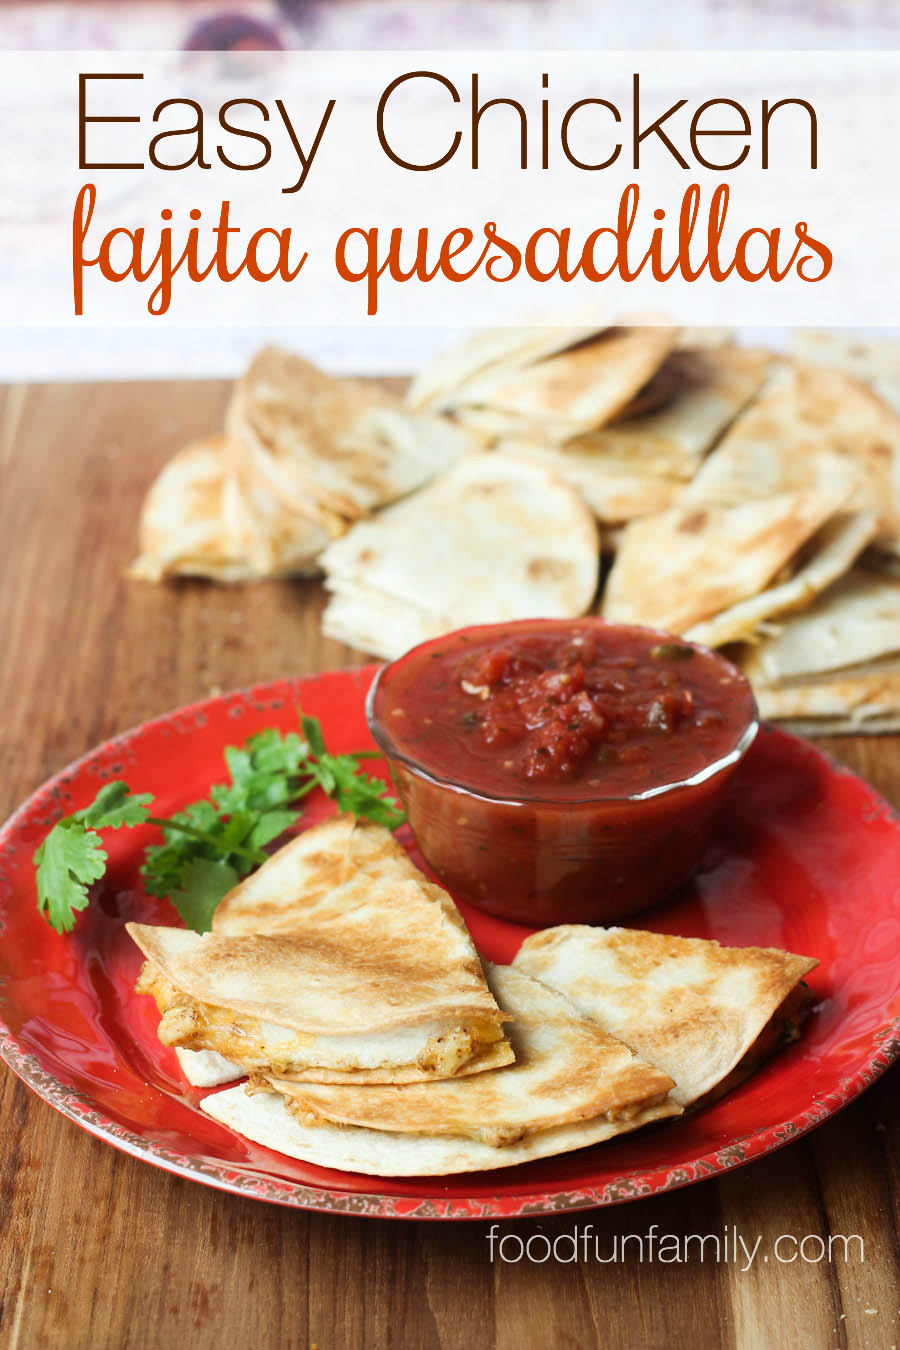 These easy chicken fajita quesadillas could not be any easier or more tasty! One simple trick makes this recipe SO much easier than any other chicken quesadilla recipe you've tried before!